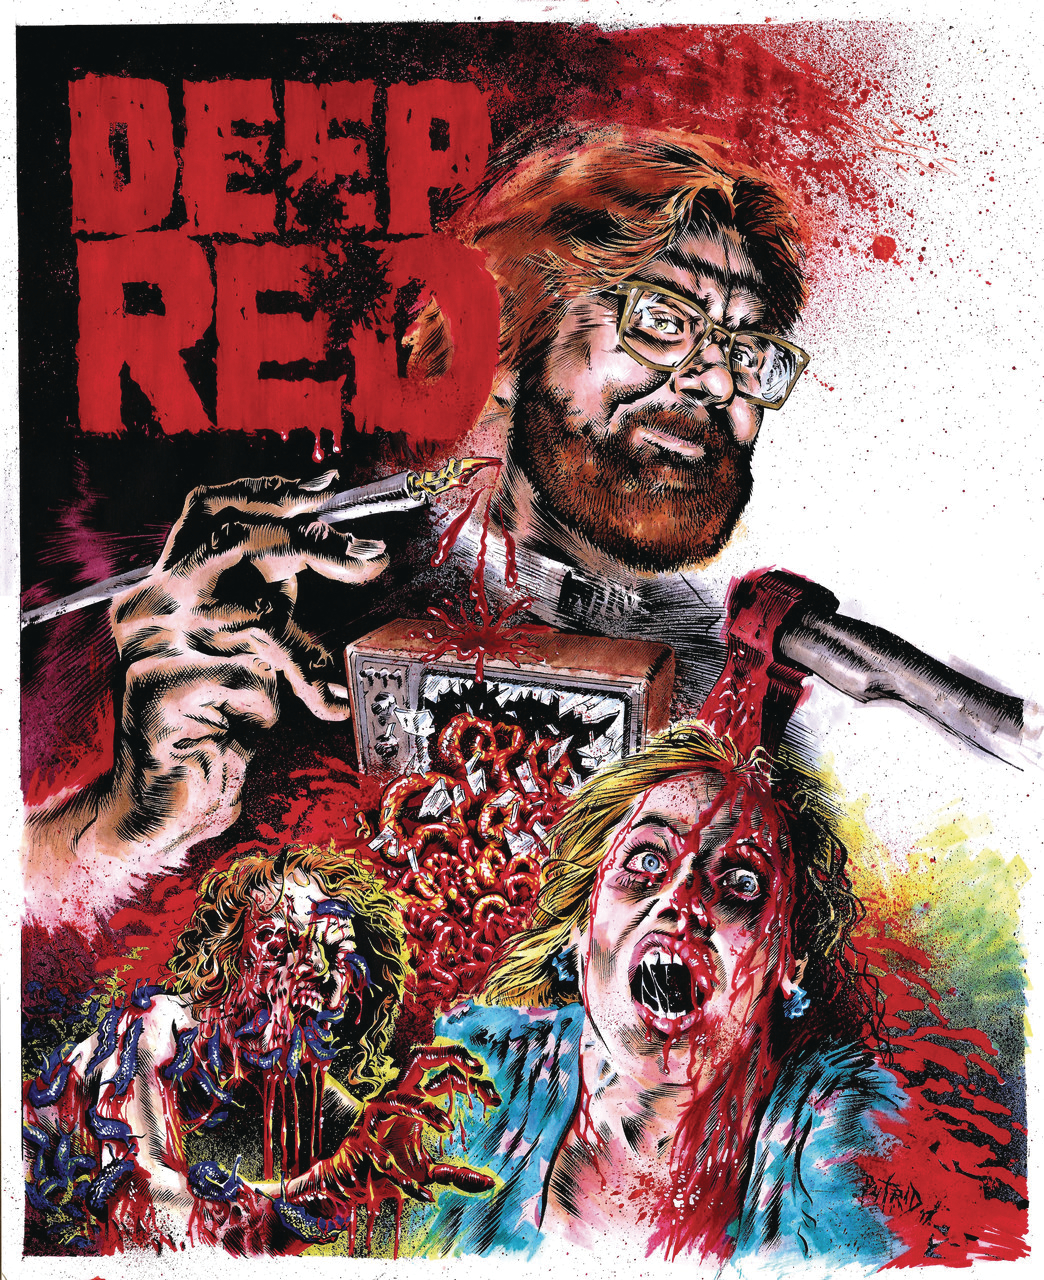 DEEP RED VOL 4 #1